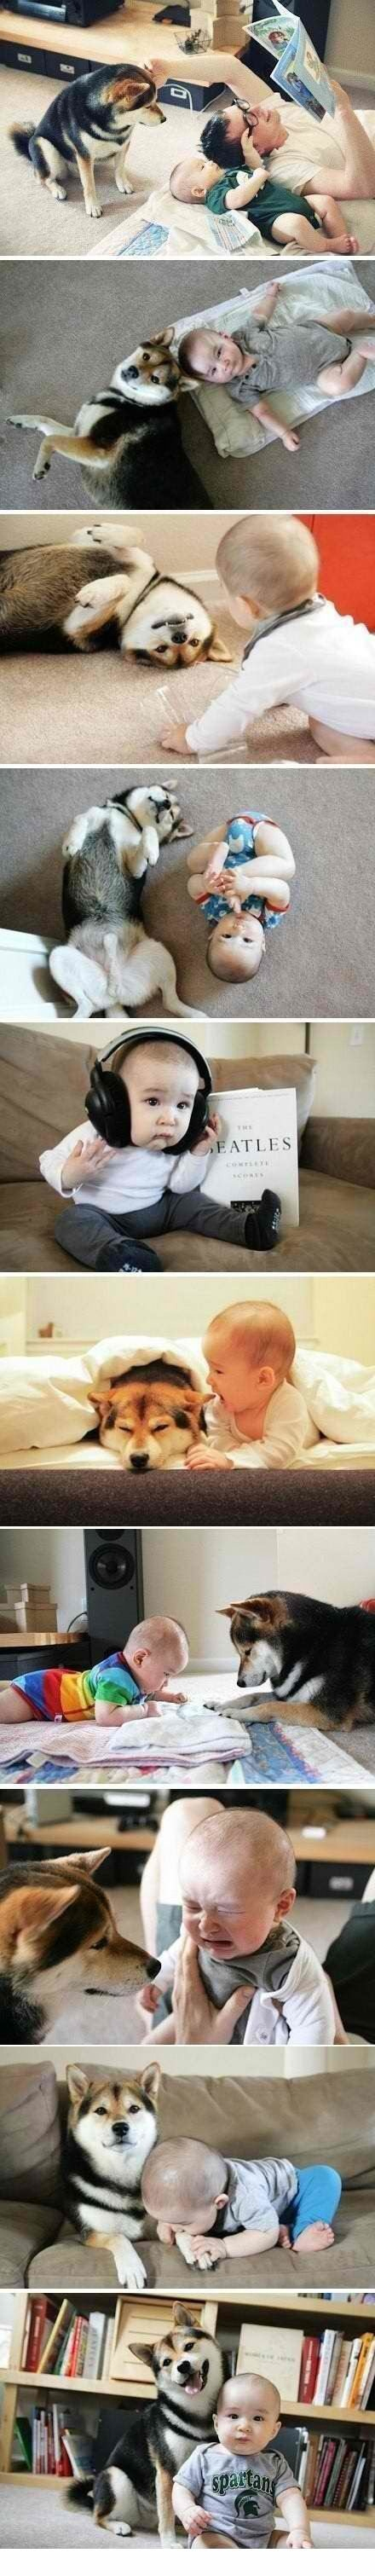 Baby and a shiba. Can't wait to see how our shiba  reacts to the baby.